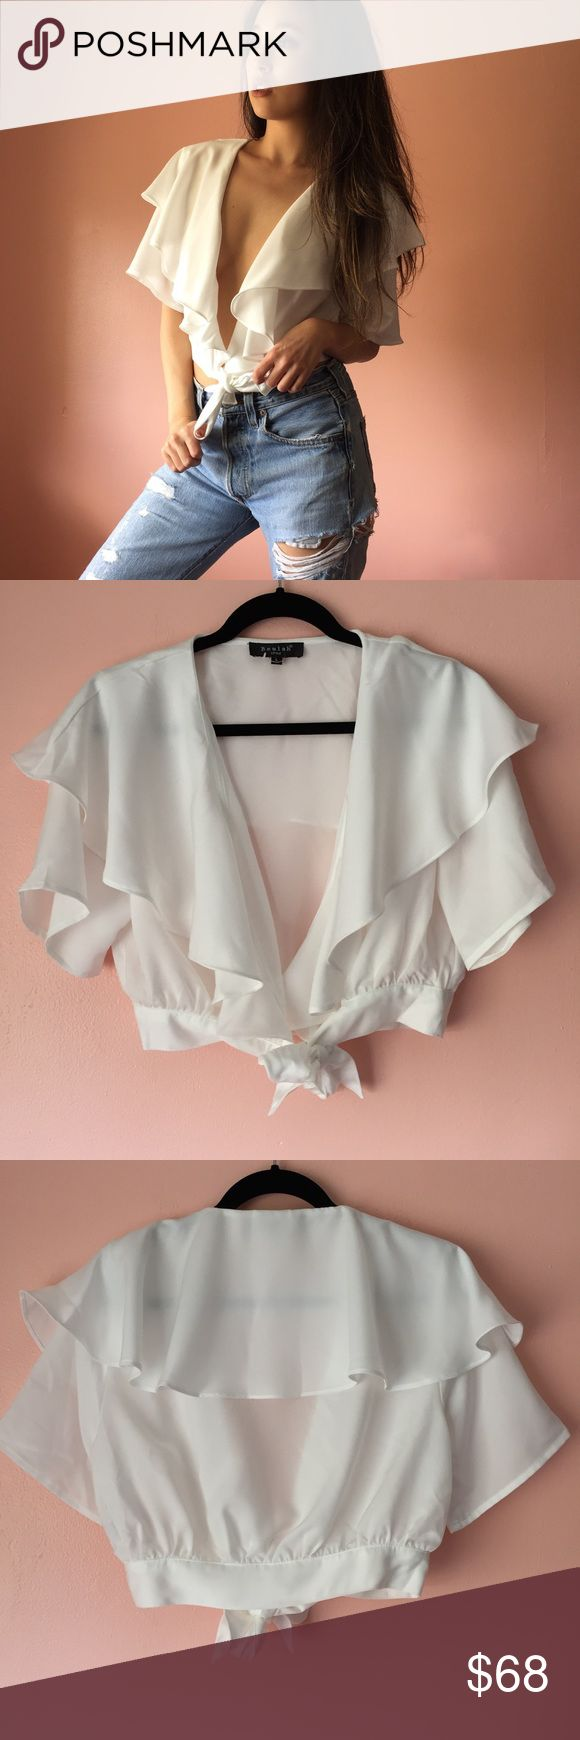 Nasty Gal Plunging Ruffle Crop Blouse Host a fiesta in this ruffled cropped blouse from Nasty Gal. Features a plunging neckline, wide ruffle collar, short sleeves, cropped silhouette with front ties. Wear with high waisted anything. New without tags. Fits a bit small like a medium. Not pinned on model. Marked size L. No returns allowed. Please ask all questions before buying. IG: [at] jacqueline.pak #nastygal Nasty Gal Tops Blouses